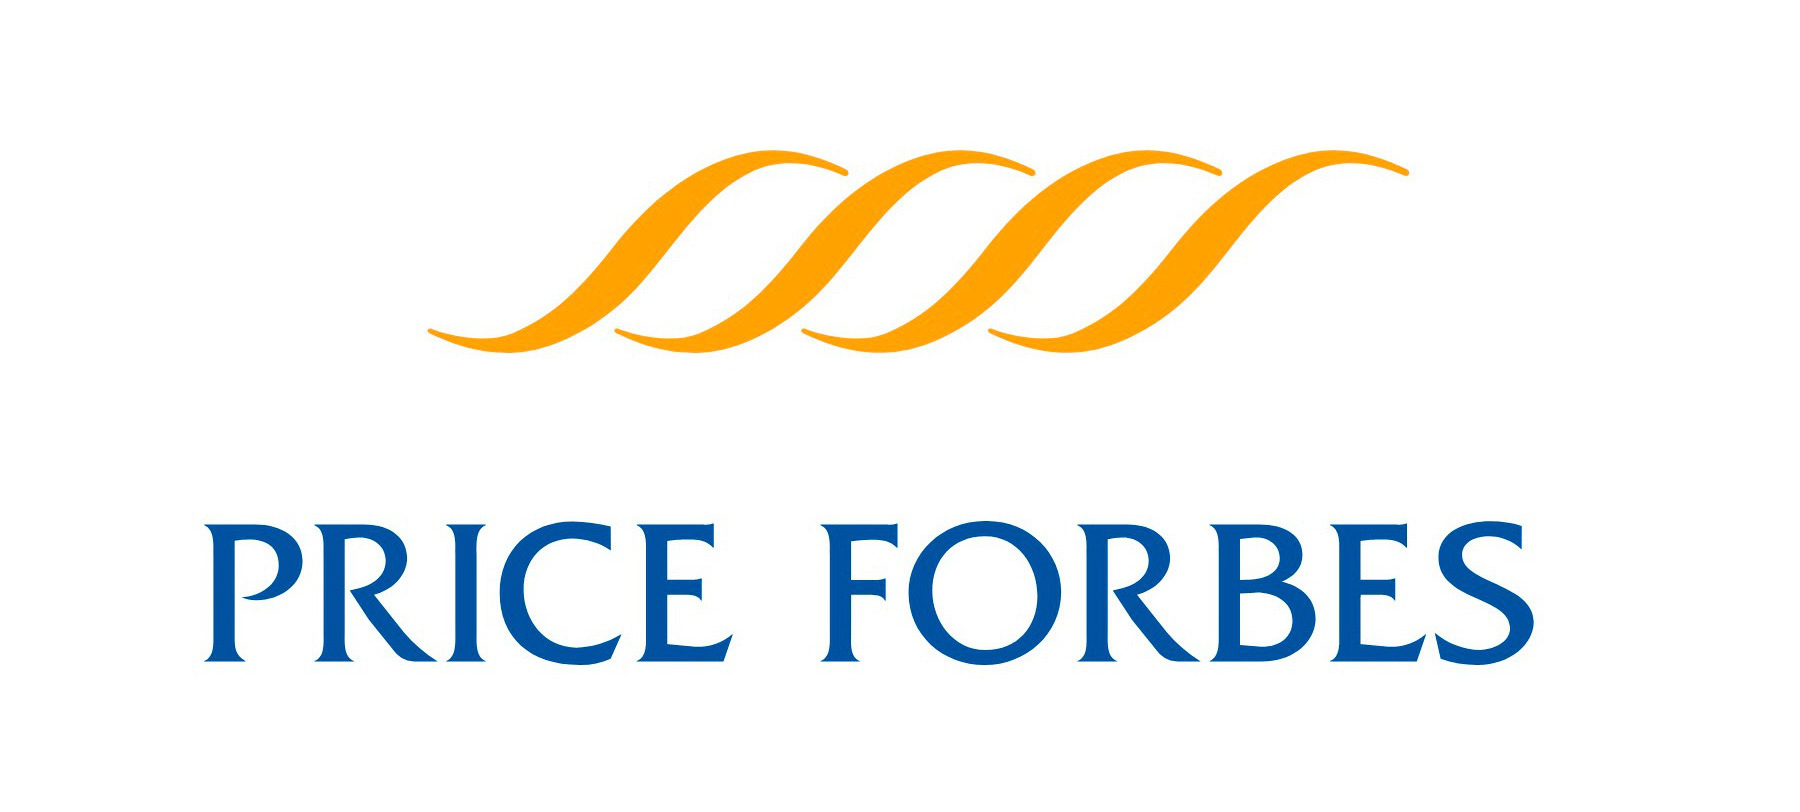 Price Forbes & Partners | Space insurance and risk mitigation experts